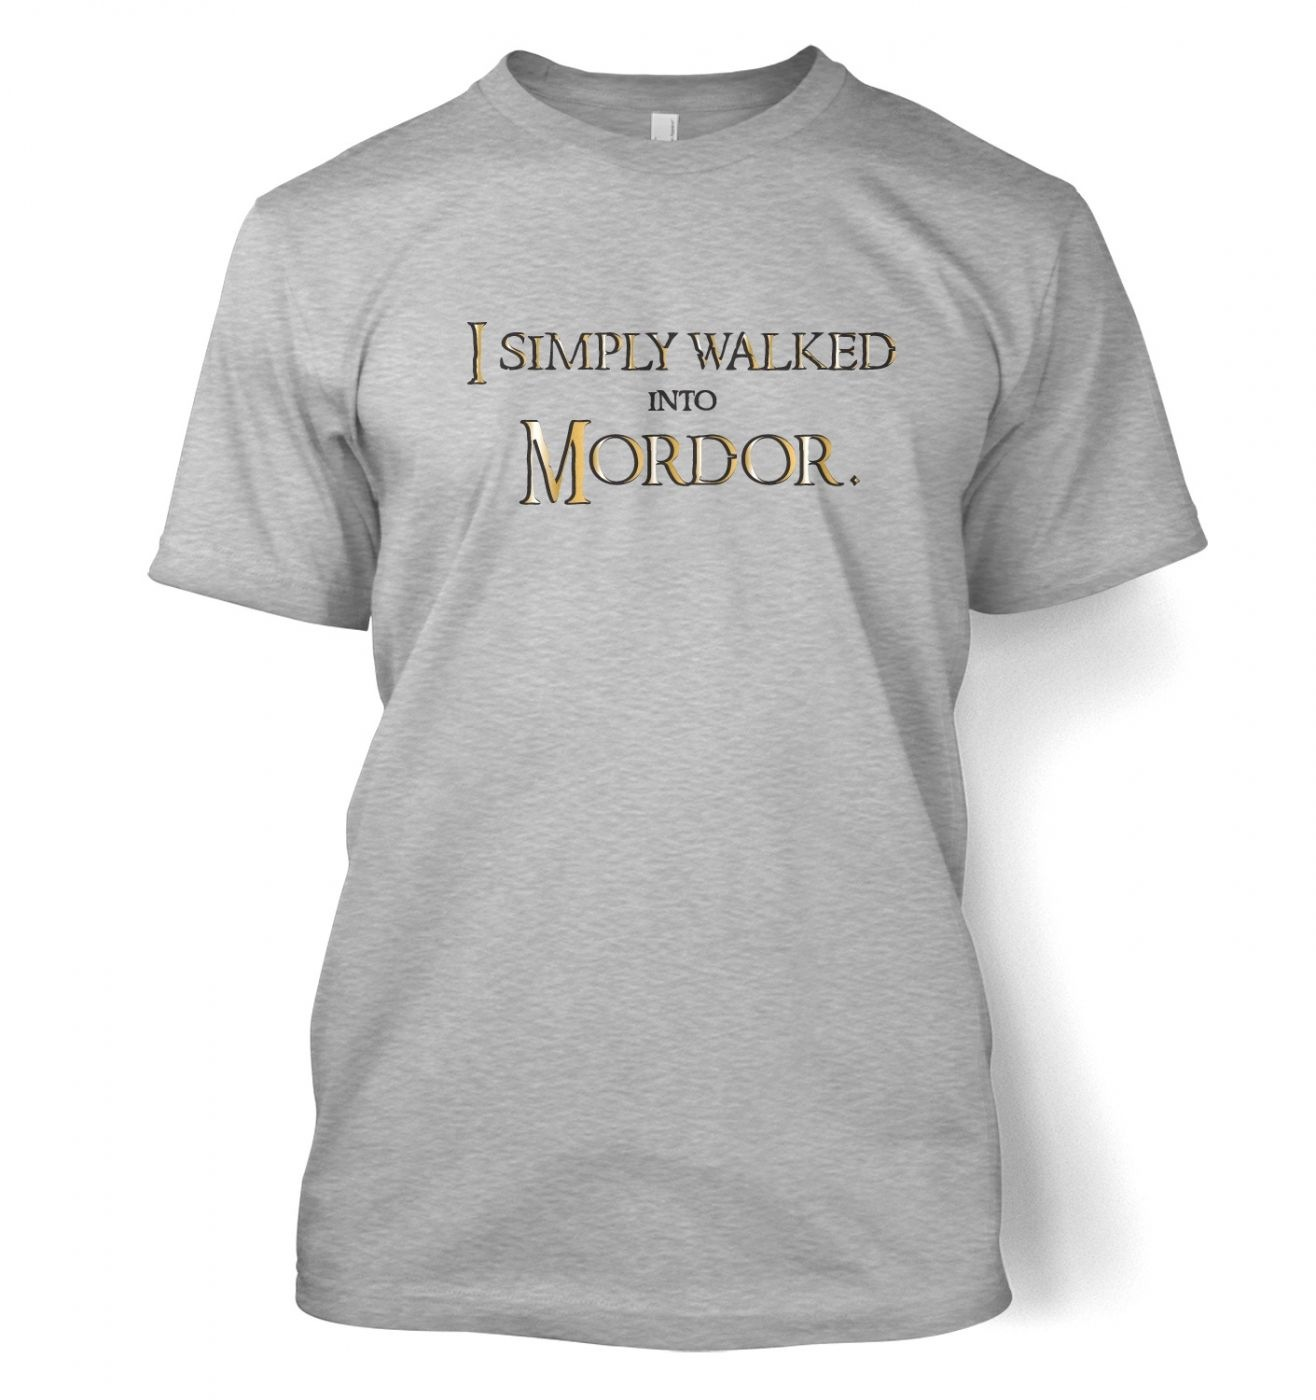 Gold I simply walked into Mordor t-shirt